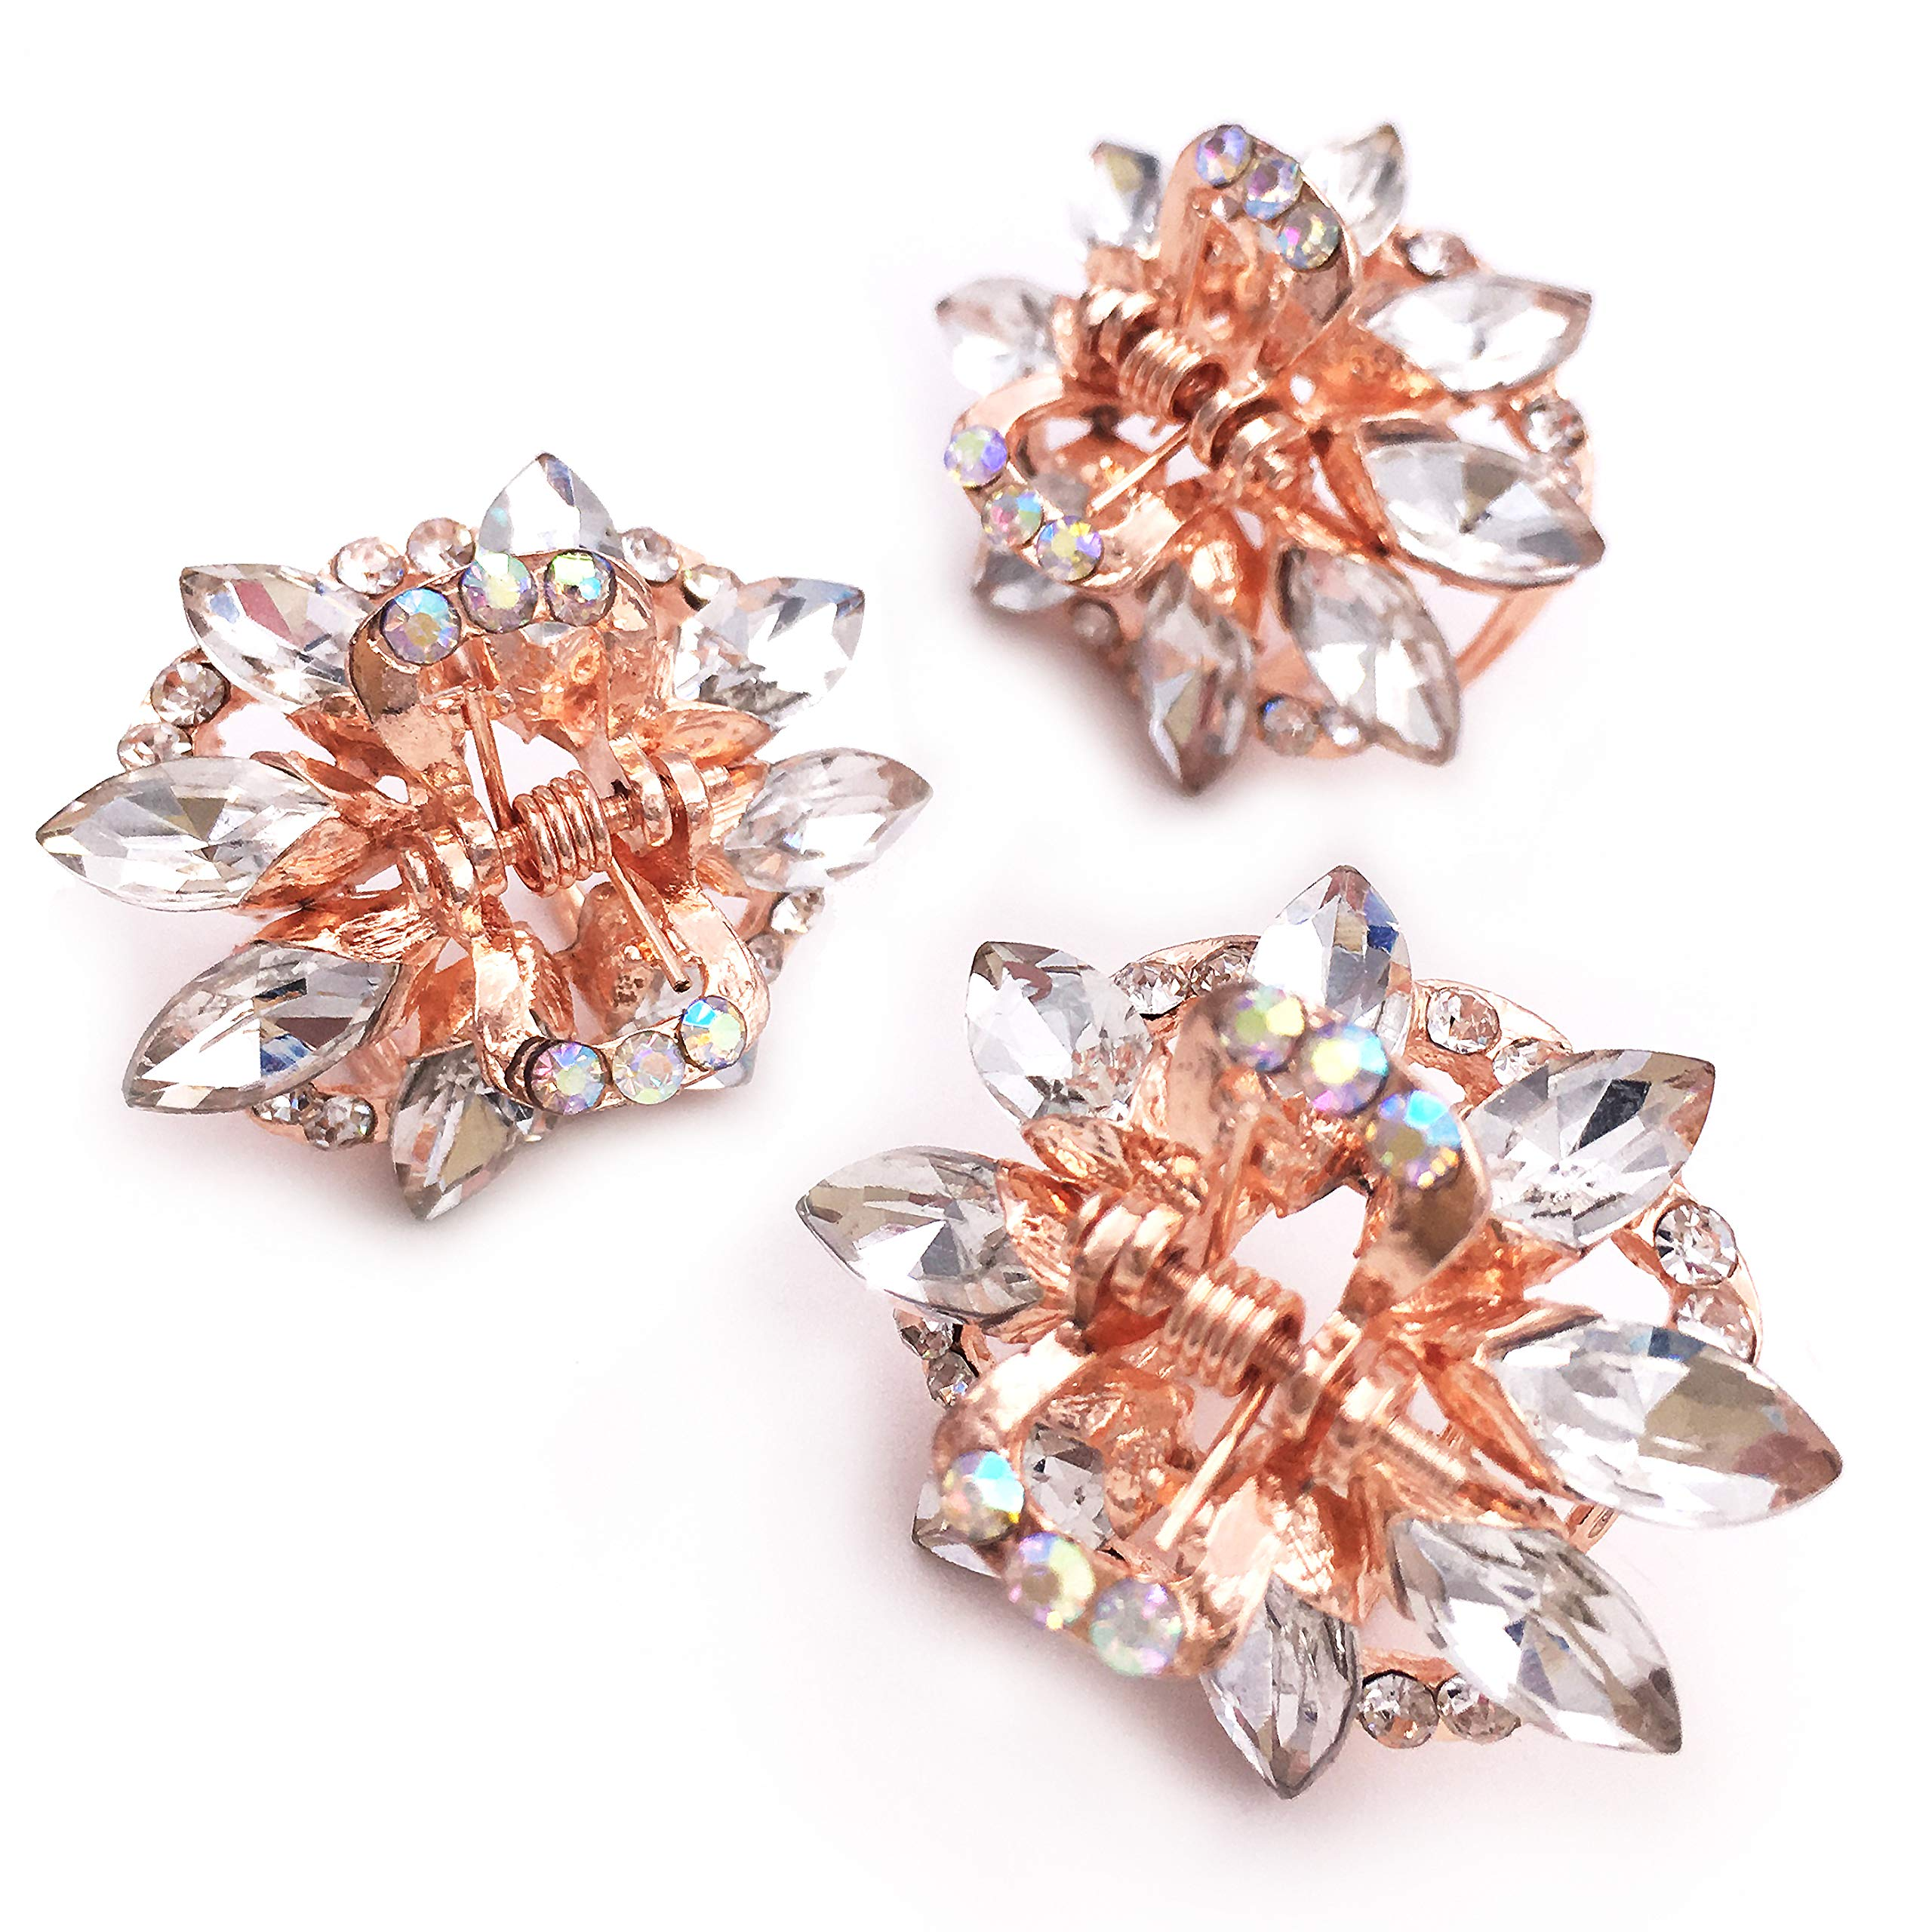 3PCS Crystal Rhinestone Rose Gold Tone Small Metal Hair Claw Clip for Women Girls